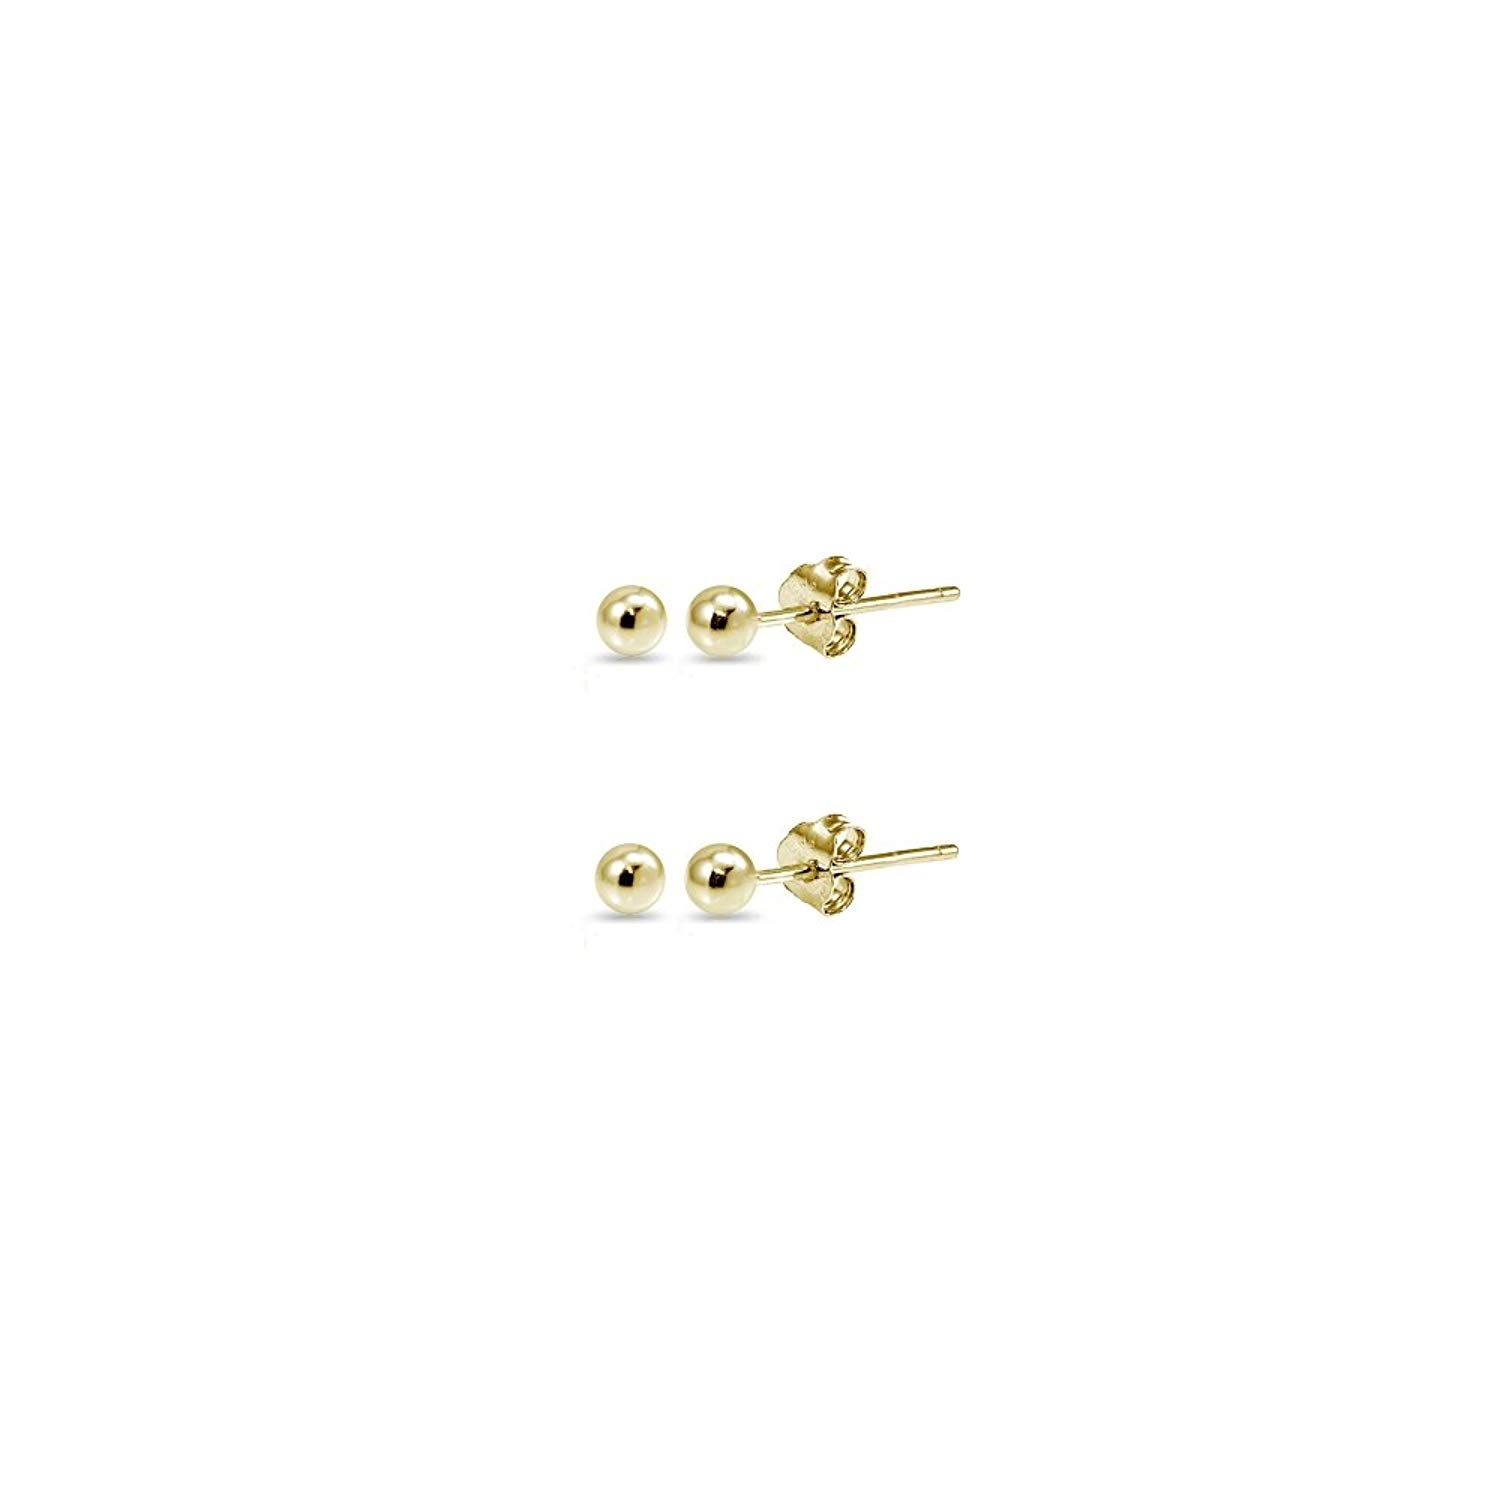 14K Gold 3mm Polished Tiny Ball Bead Unisex Stud Earrings, Set of 2 Pairs